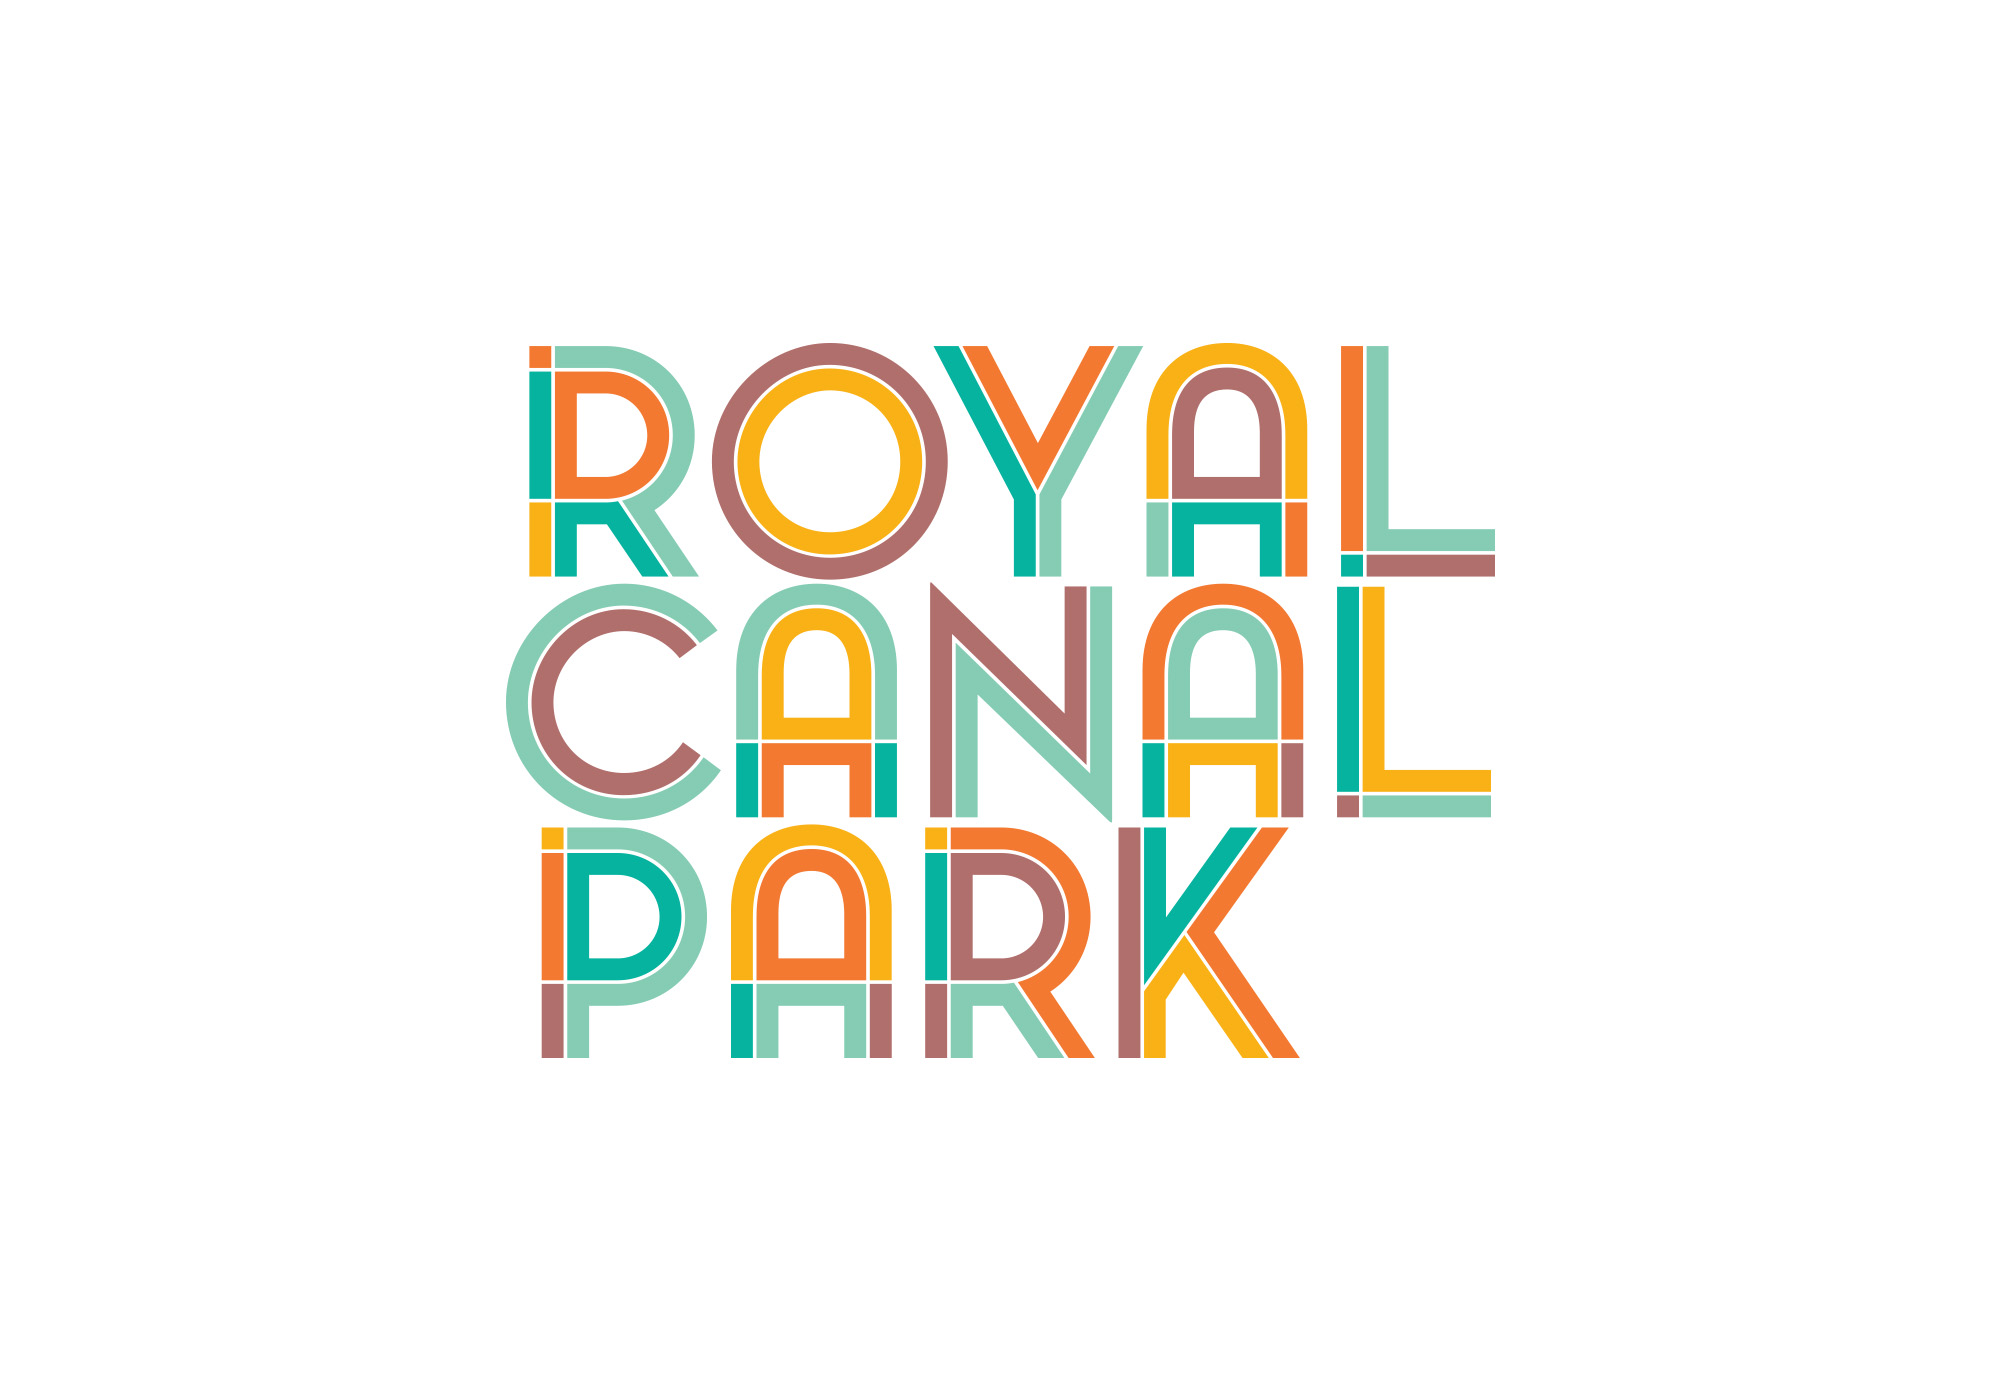 Cover image: Royal Canal Park